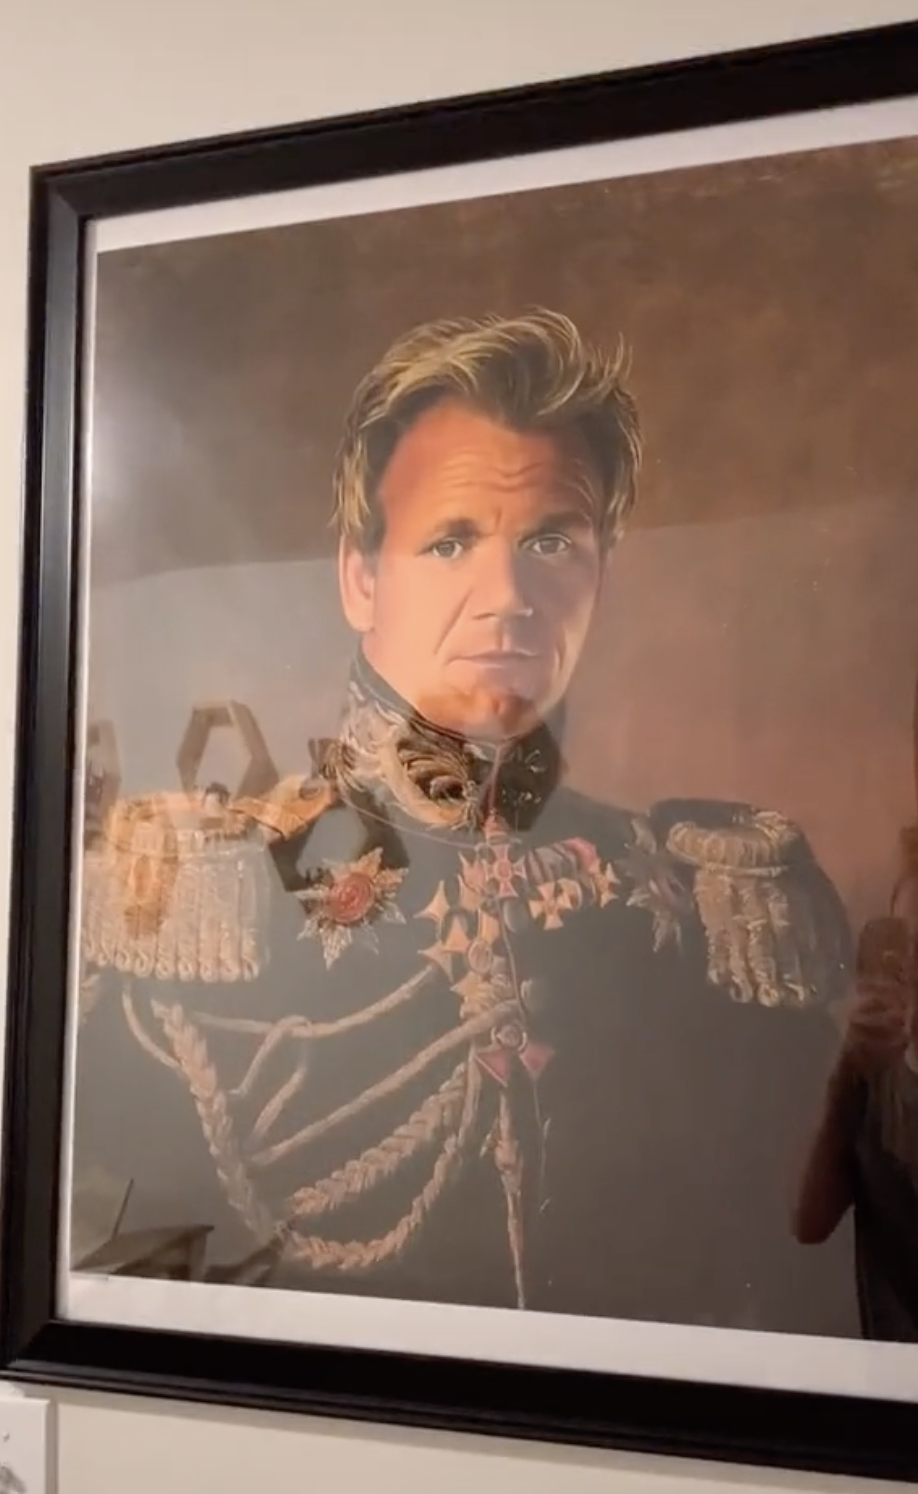 A painting portrait of Gordon Ramsay in a medieval prince attire